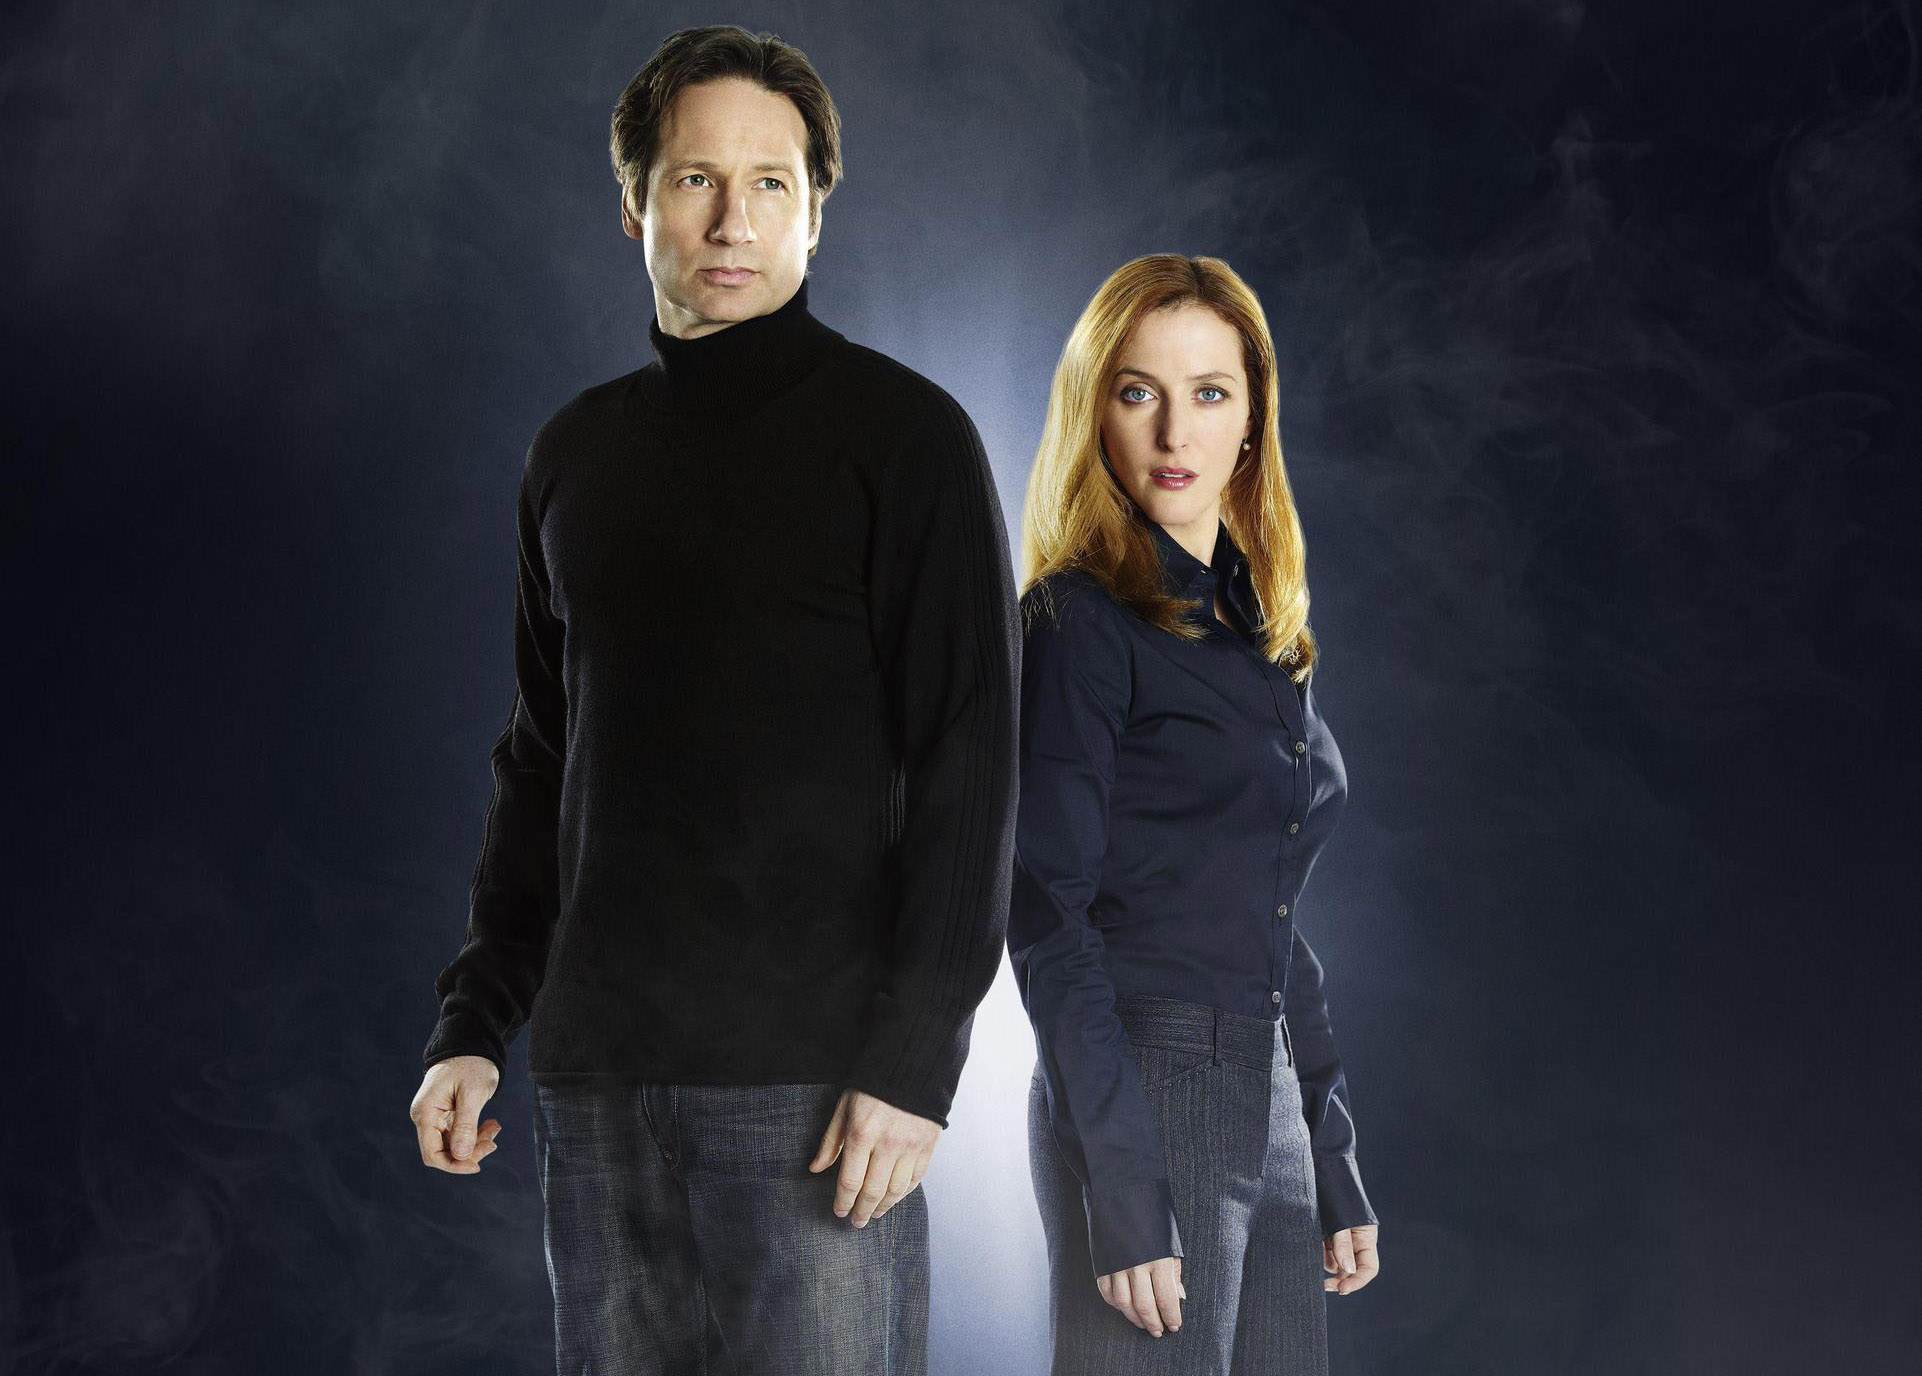 Wallpaper iphone x files - The X Files 2016 Wallpapers